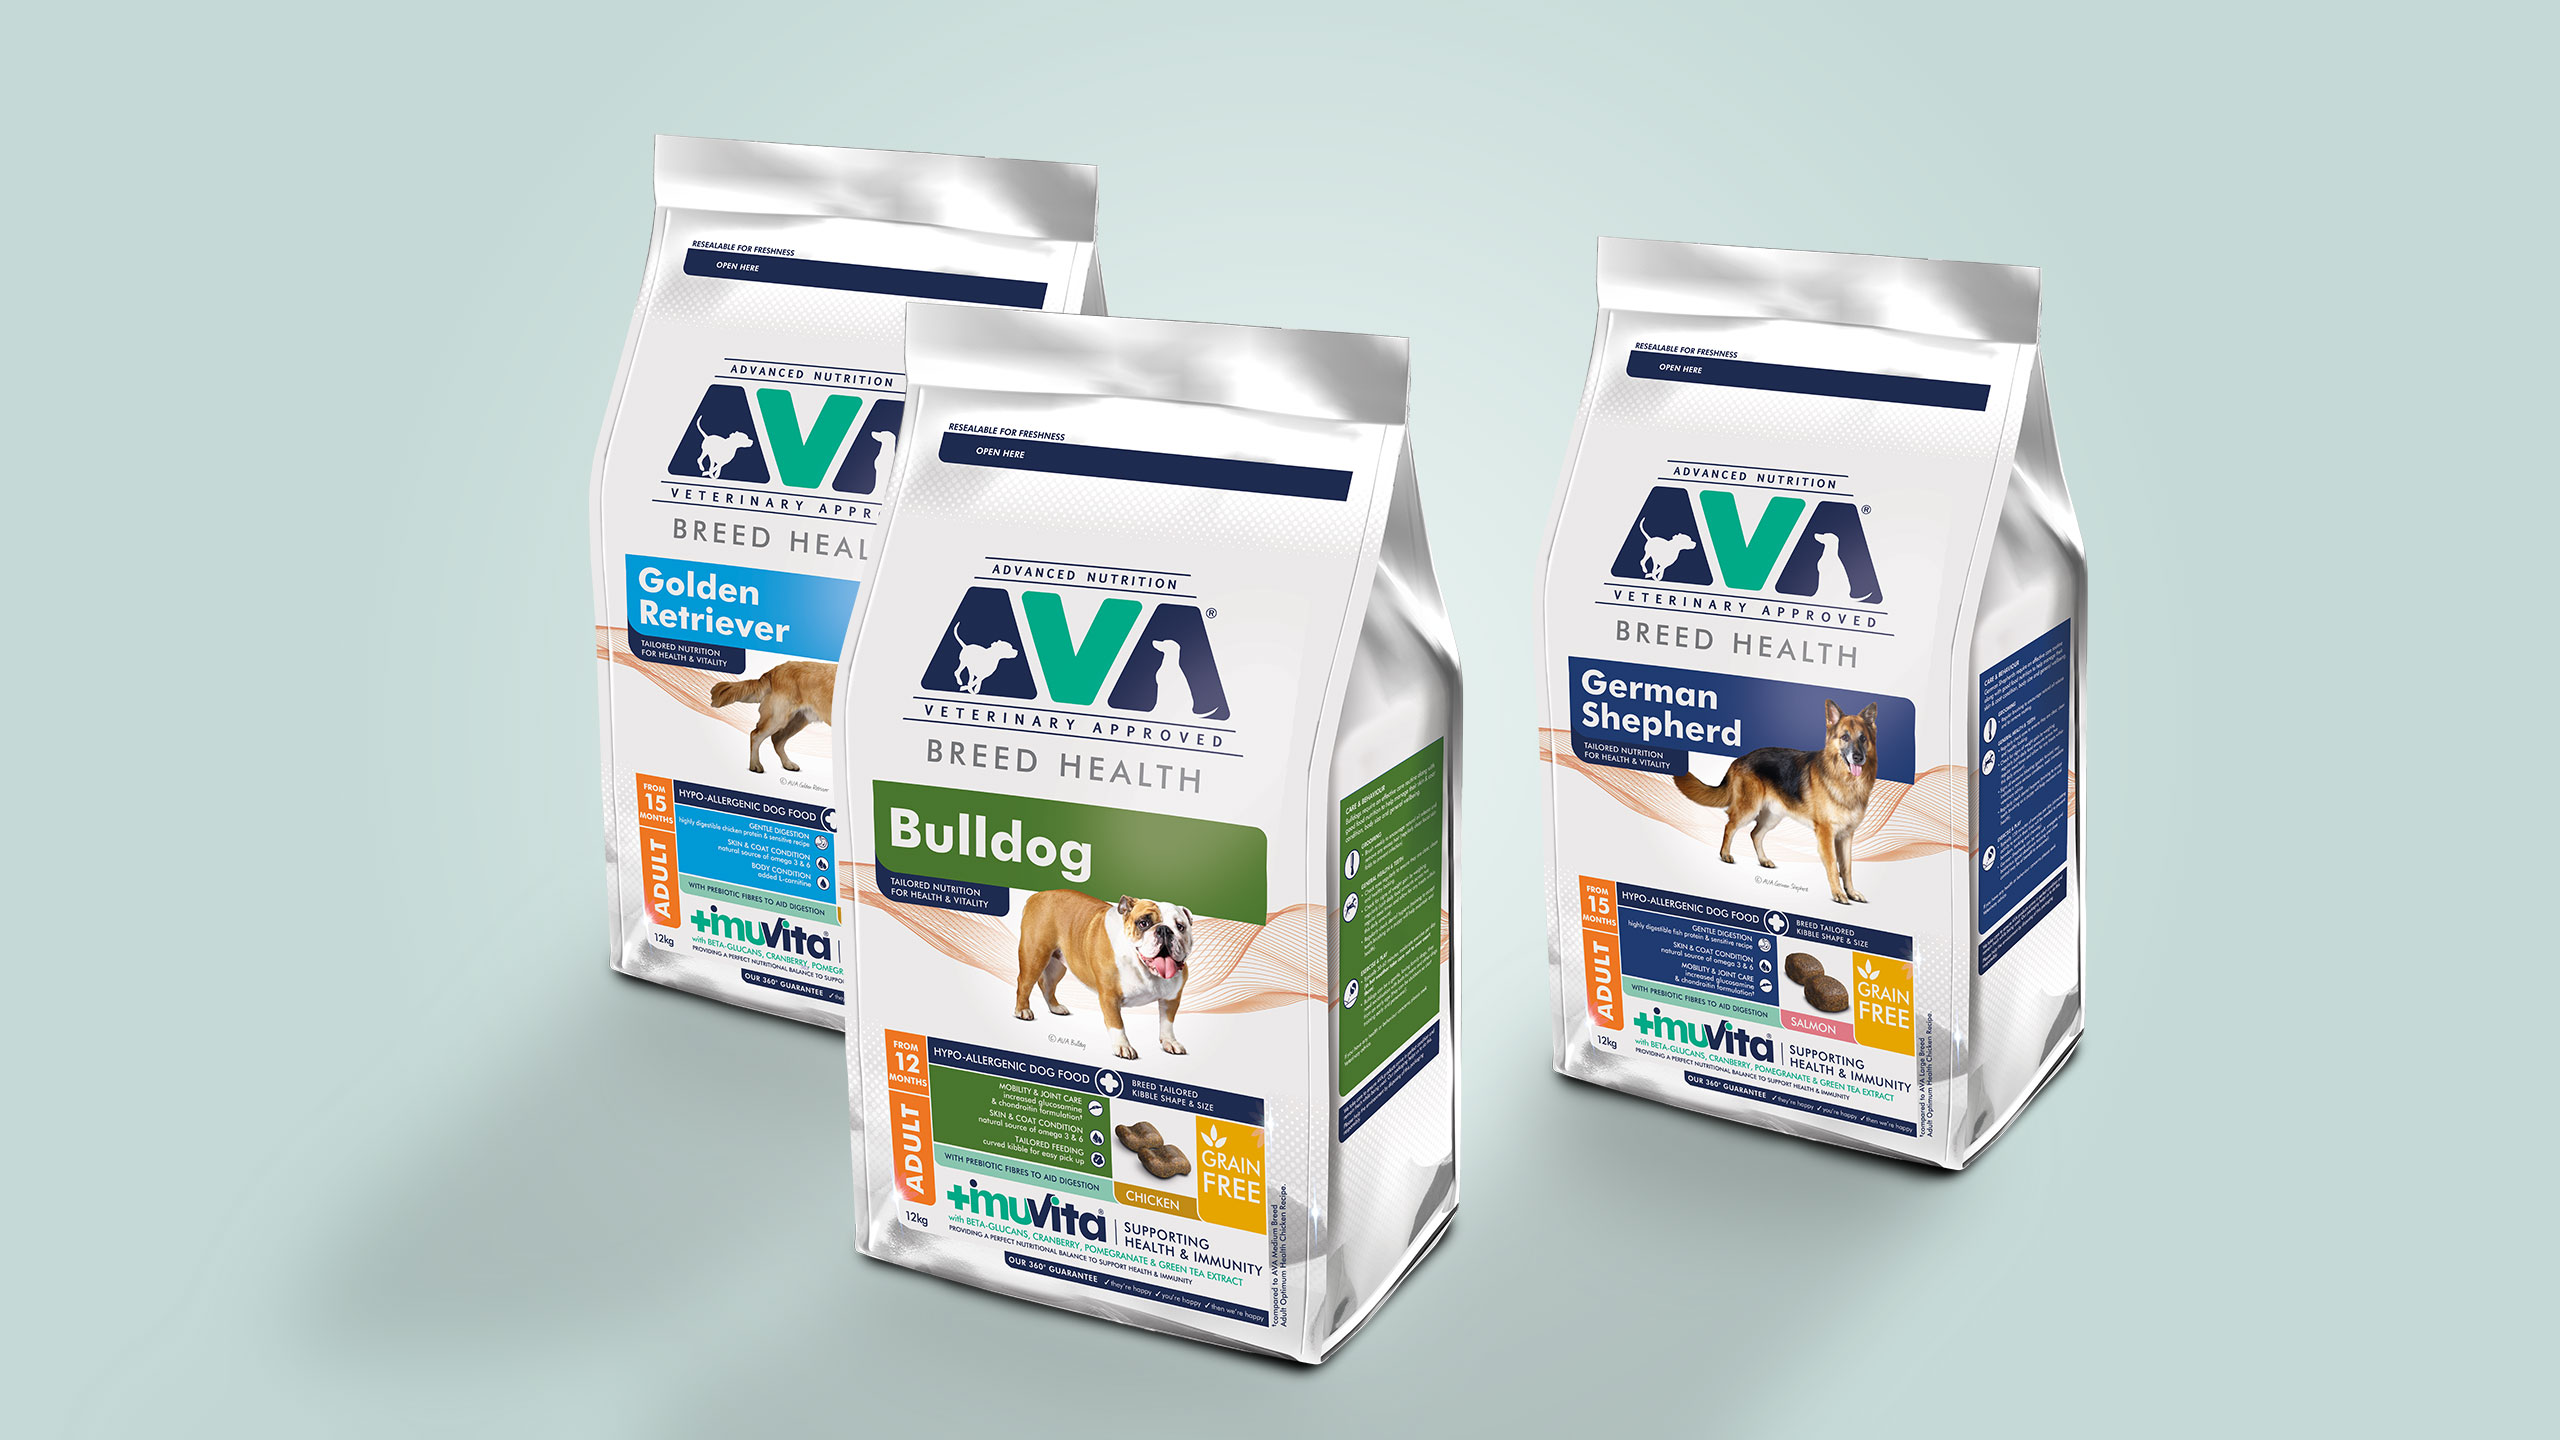 ava packaging